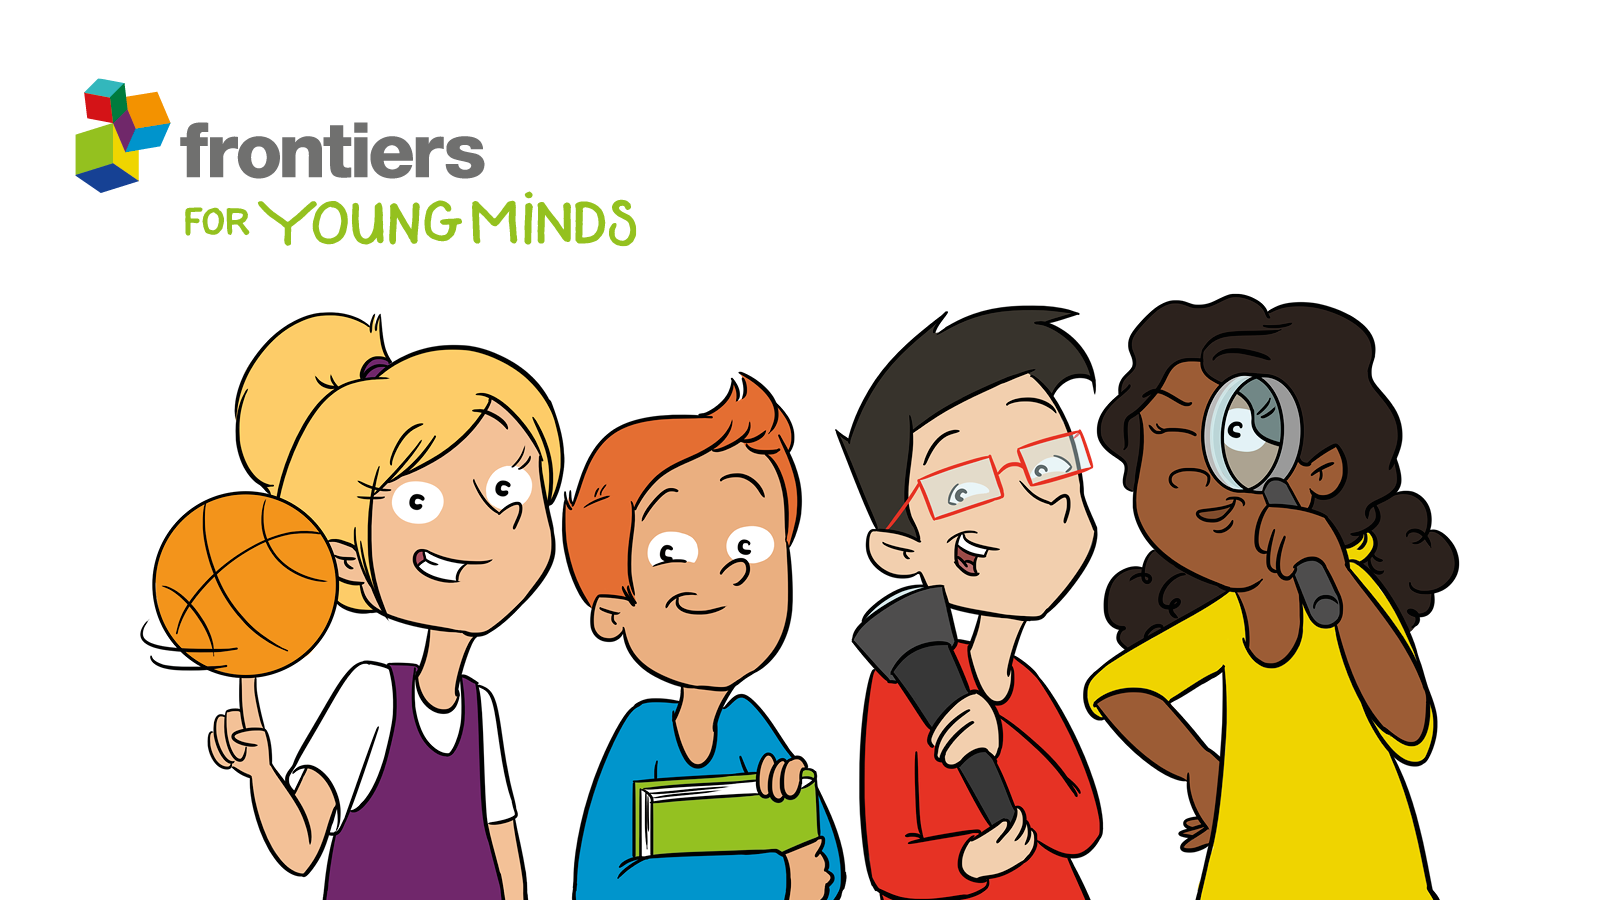 Frontiers for Young Minds Science for kids, edited by kids